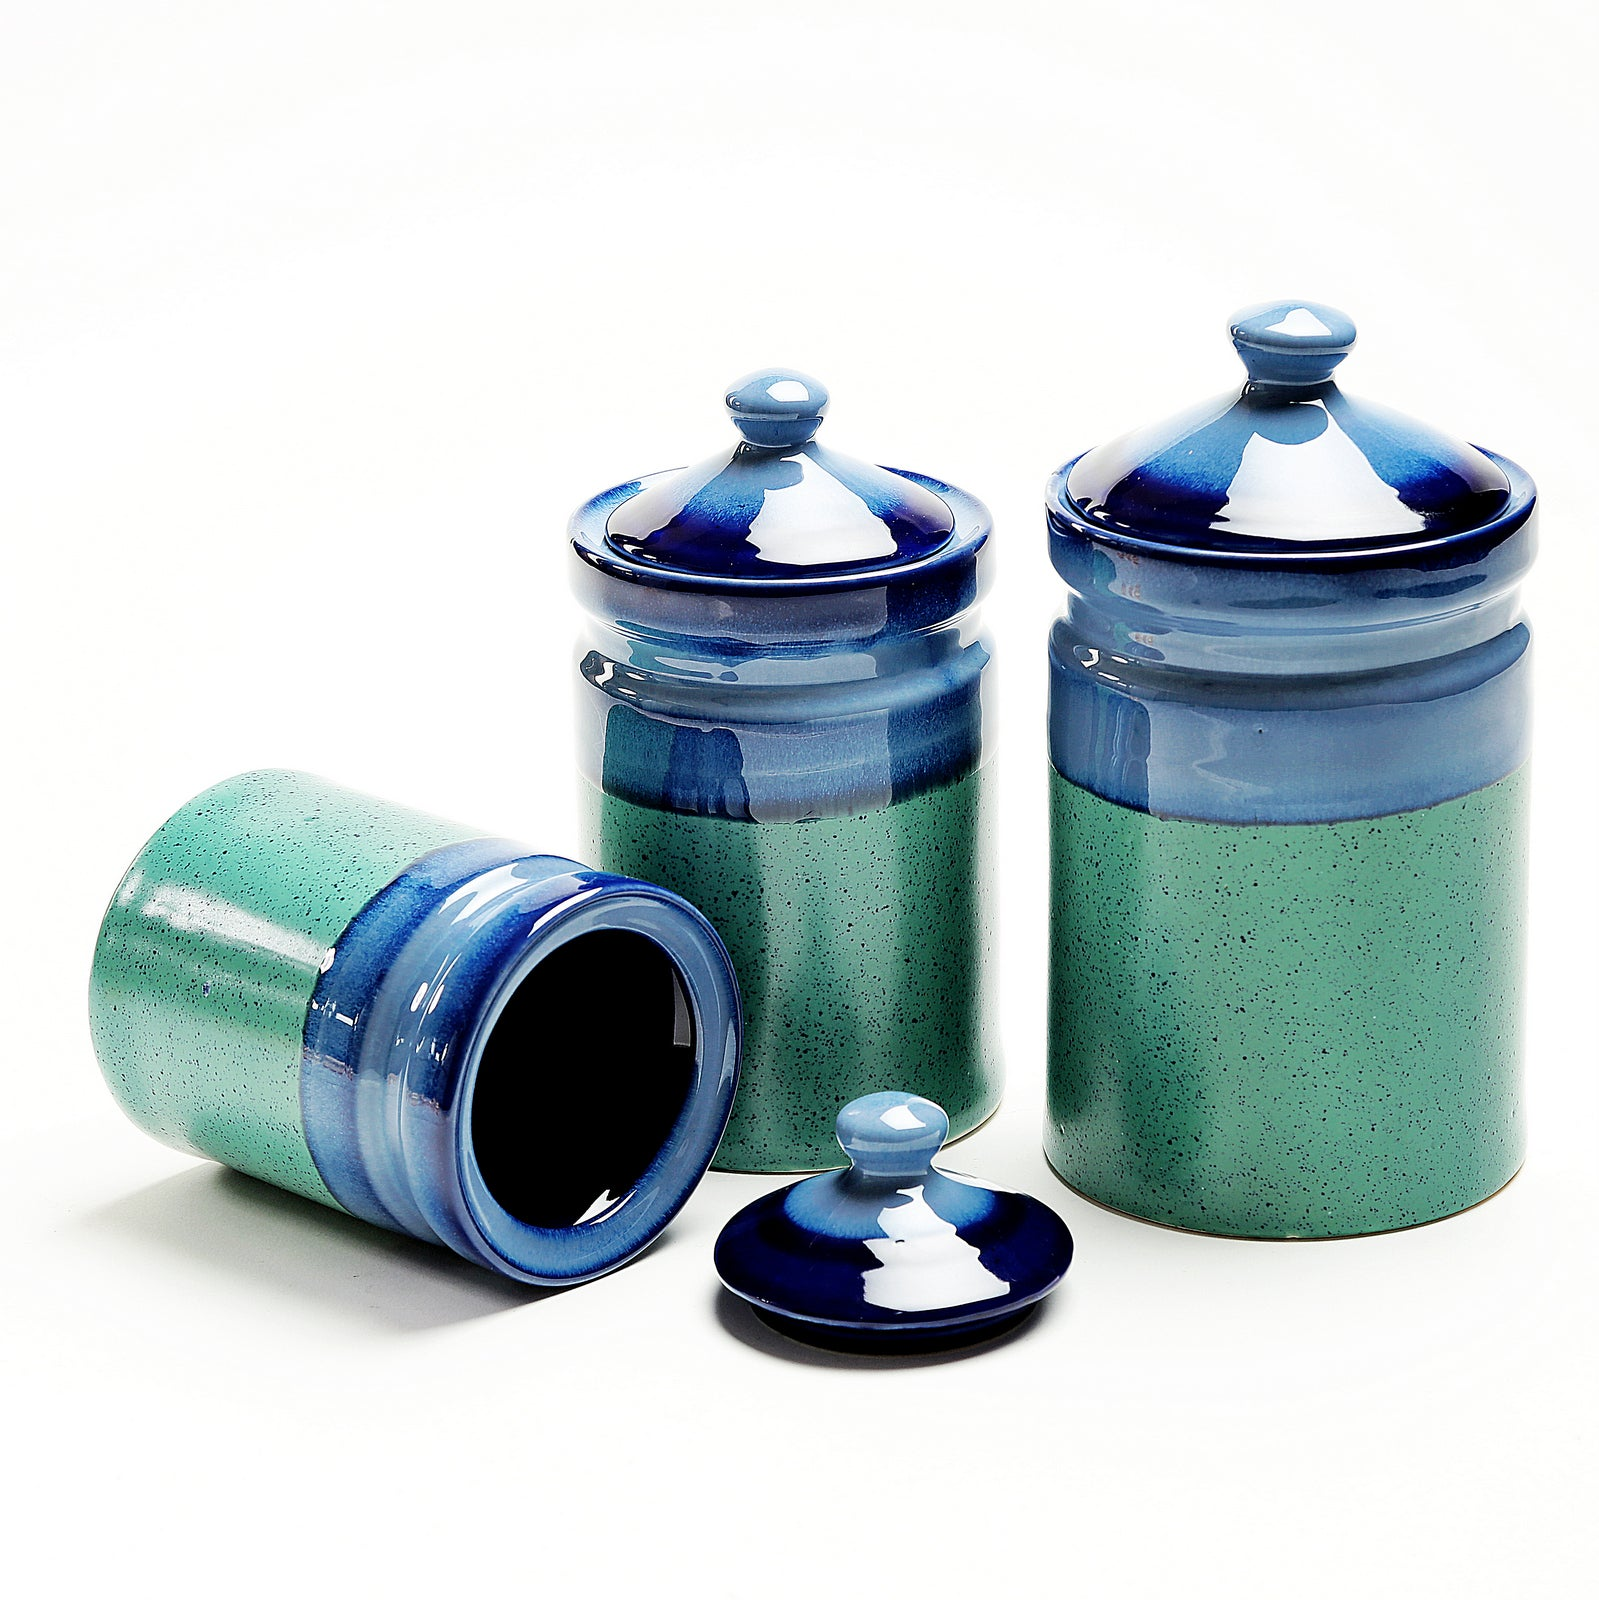 Green and Blue Studio Ceramic Barni/Containers - Set of 3